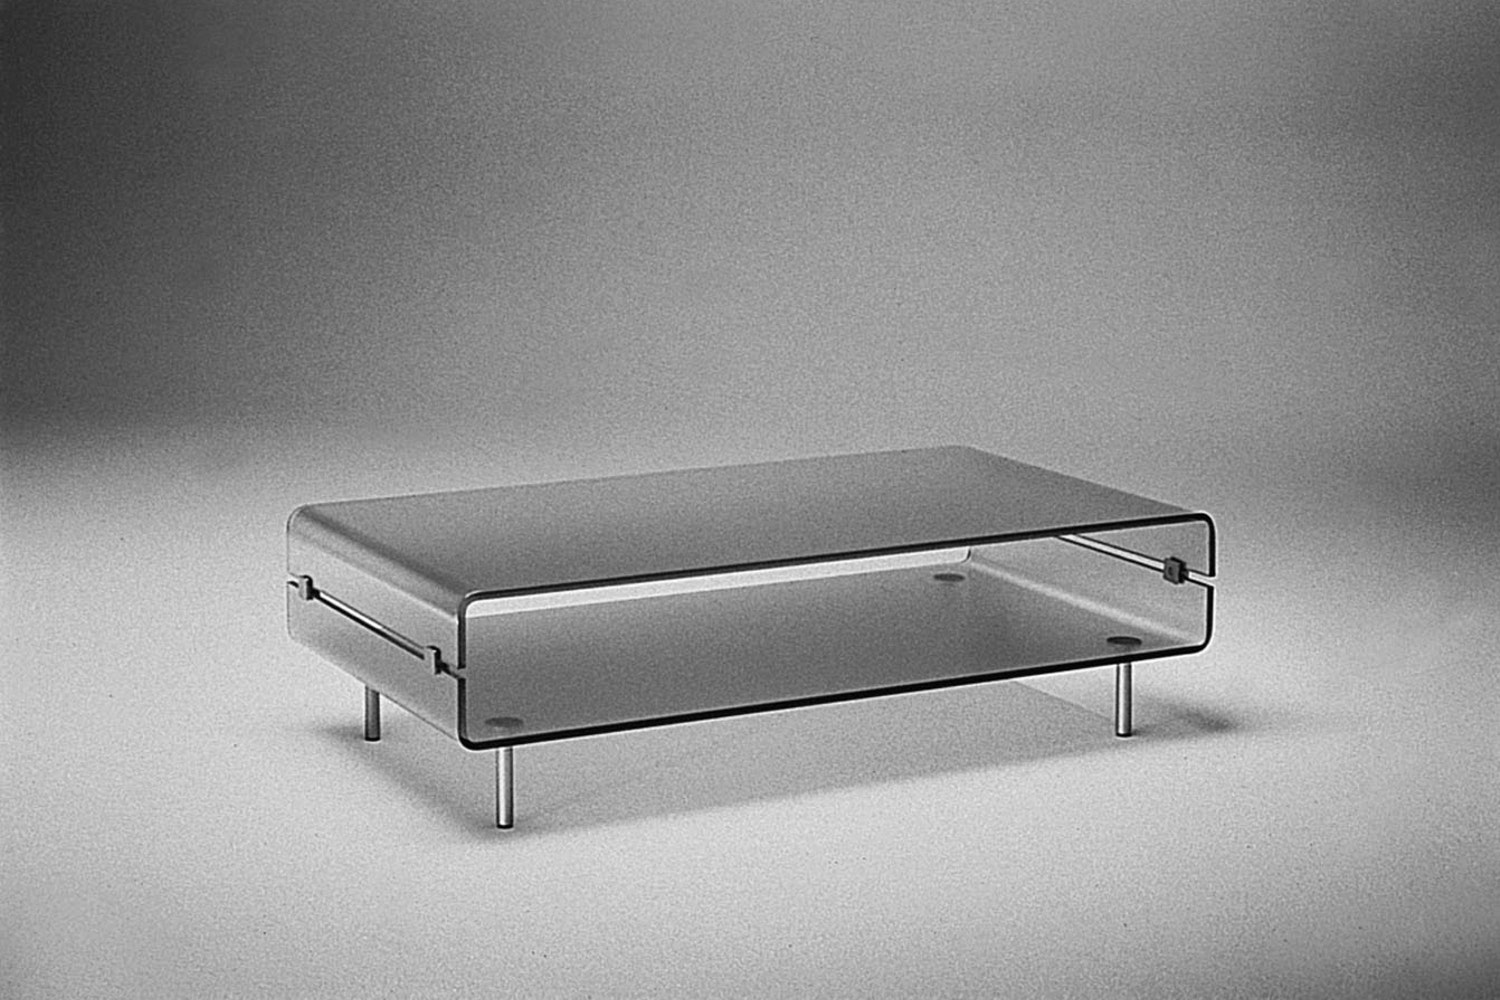 C&C Coffee Table by Christophe Pillet for Fiam Italia